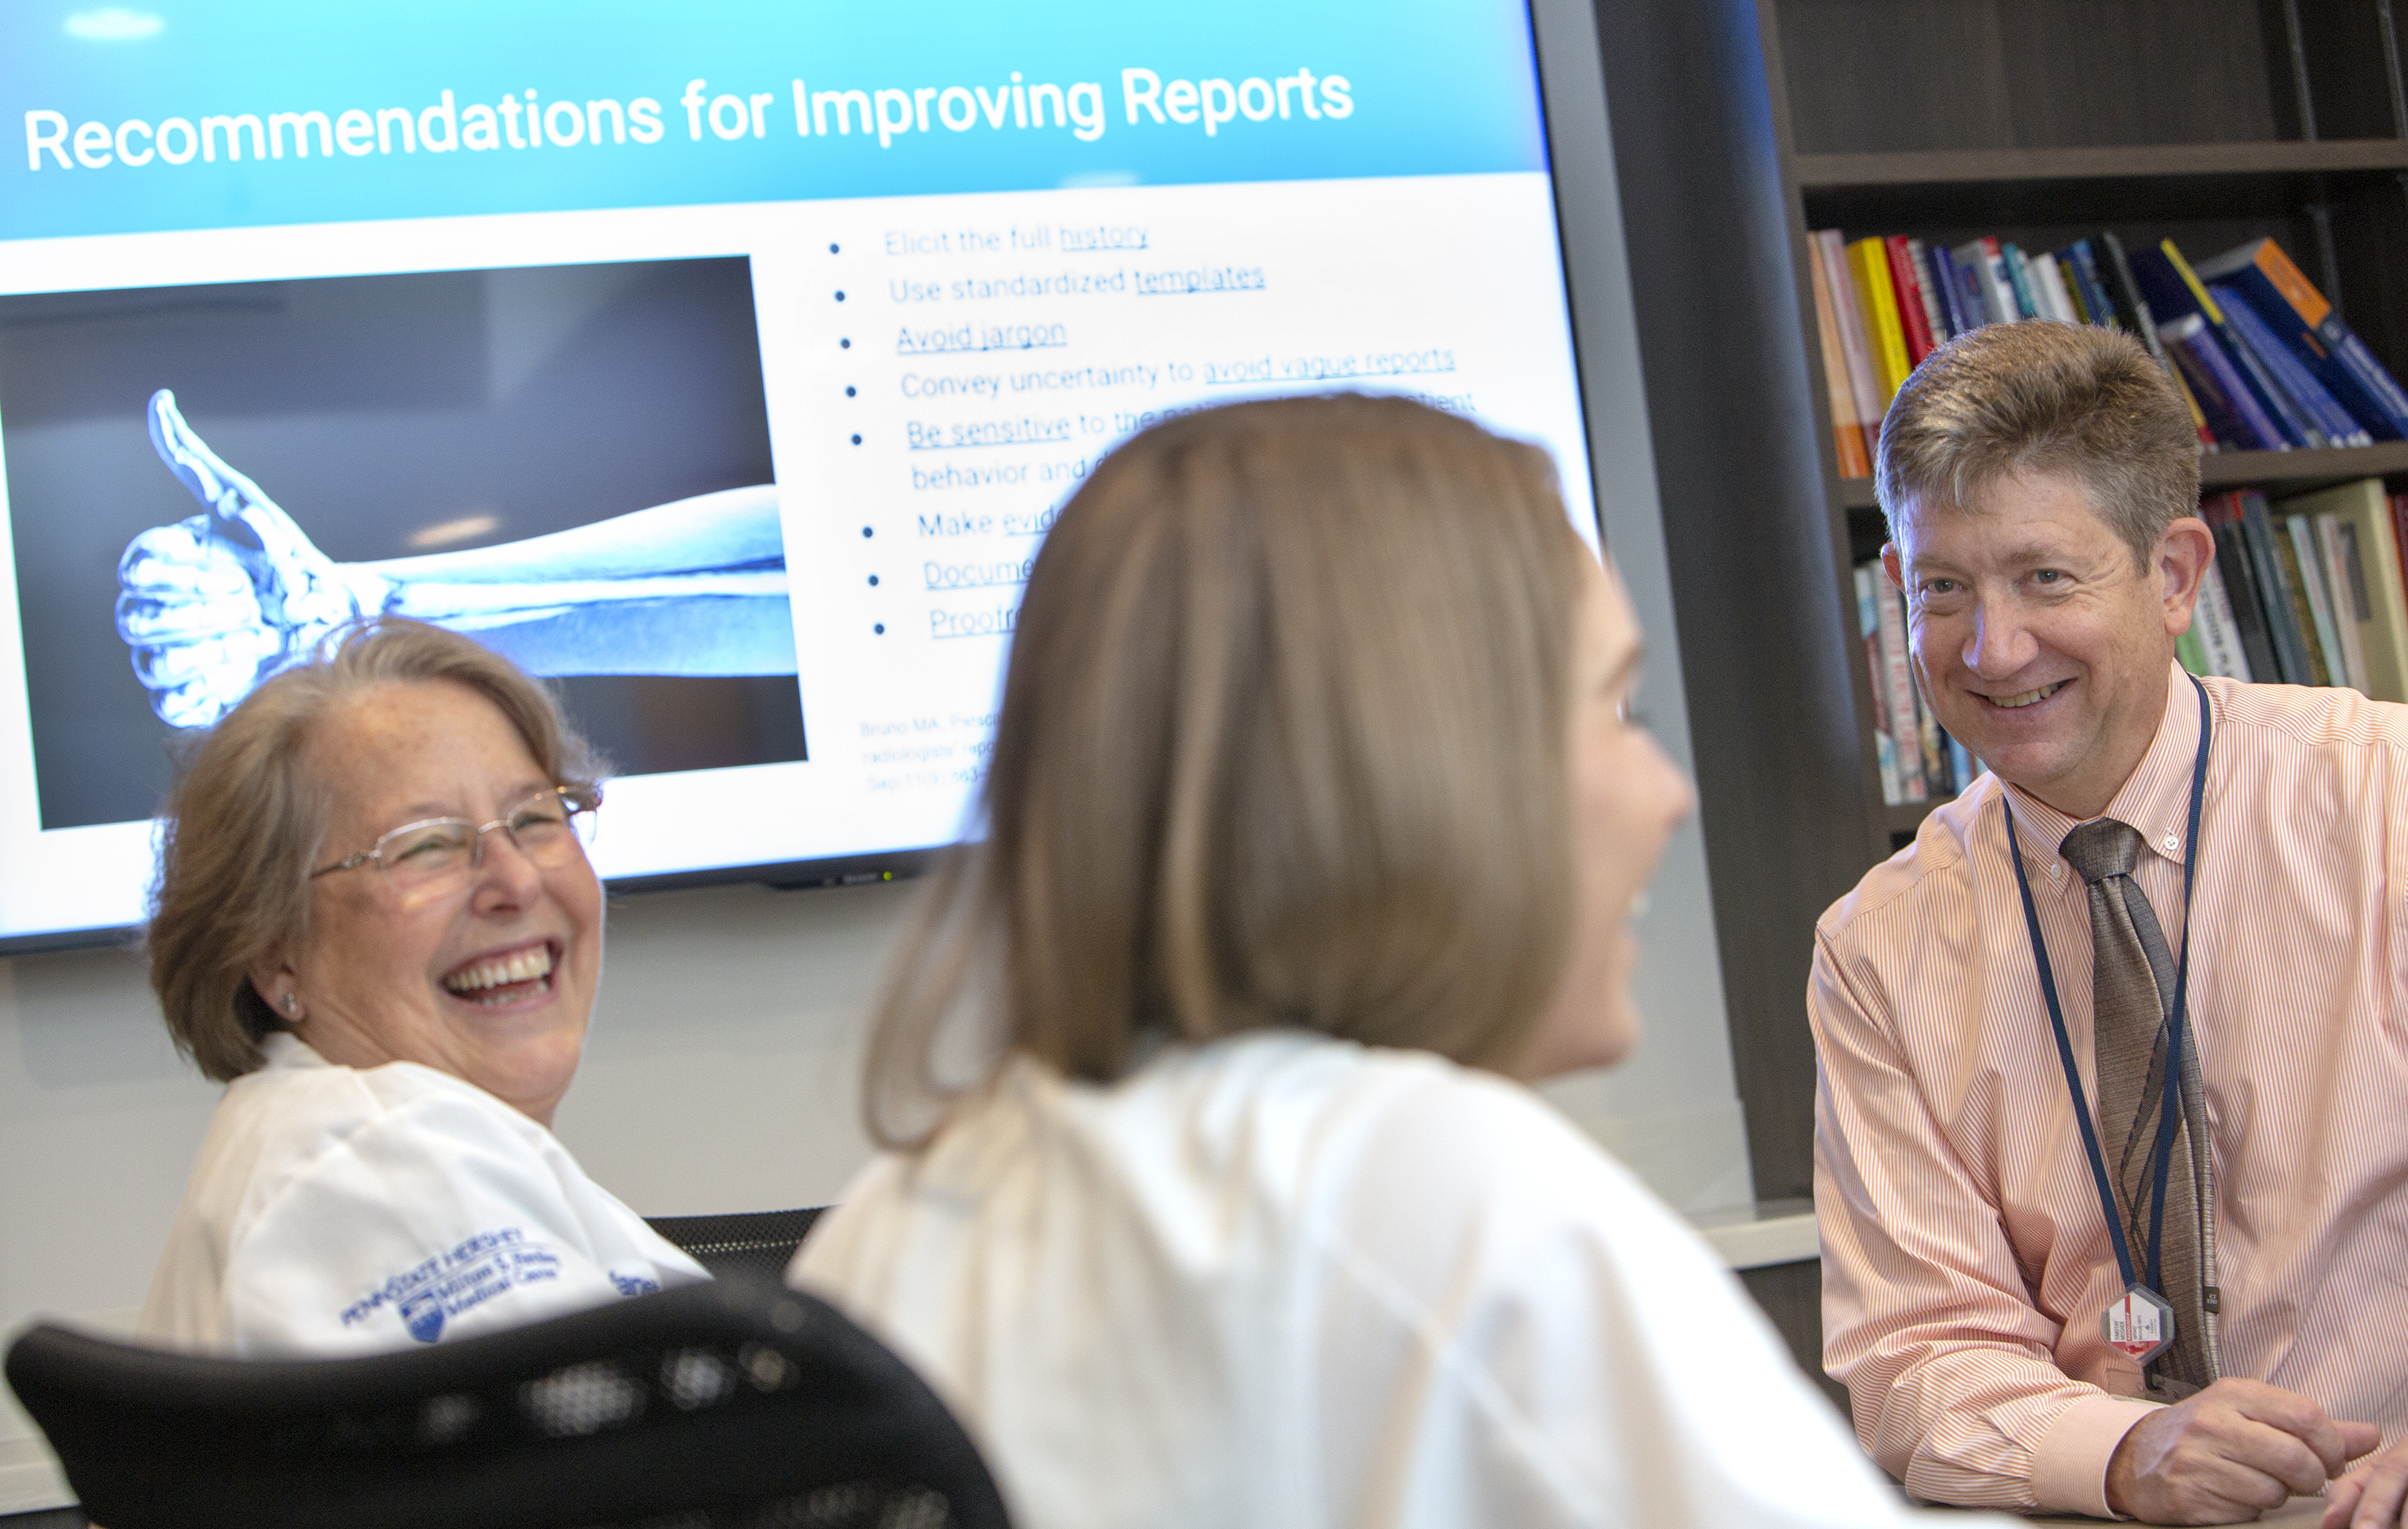 """Dr. Timothy Mosher, chair of the Department of Radiology at Penn State College of Medicine, smiles. Two women wearing white lab coats with the Milton S. Hershey Medical logo on them, smile. Behind them is a PowerPoint slide that says """"Recommendations for Improving Reports"""" and has an image of an arm with a thumb up. Behind Dr. Mosher is a bookshelf with books."""